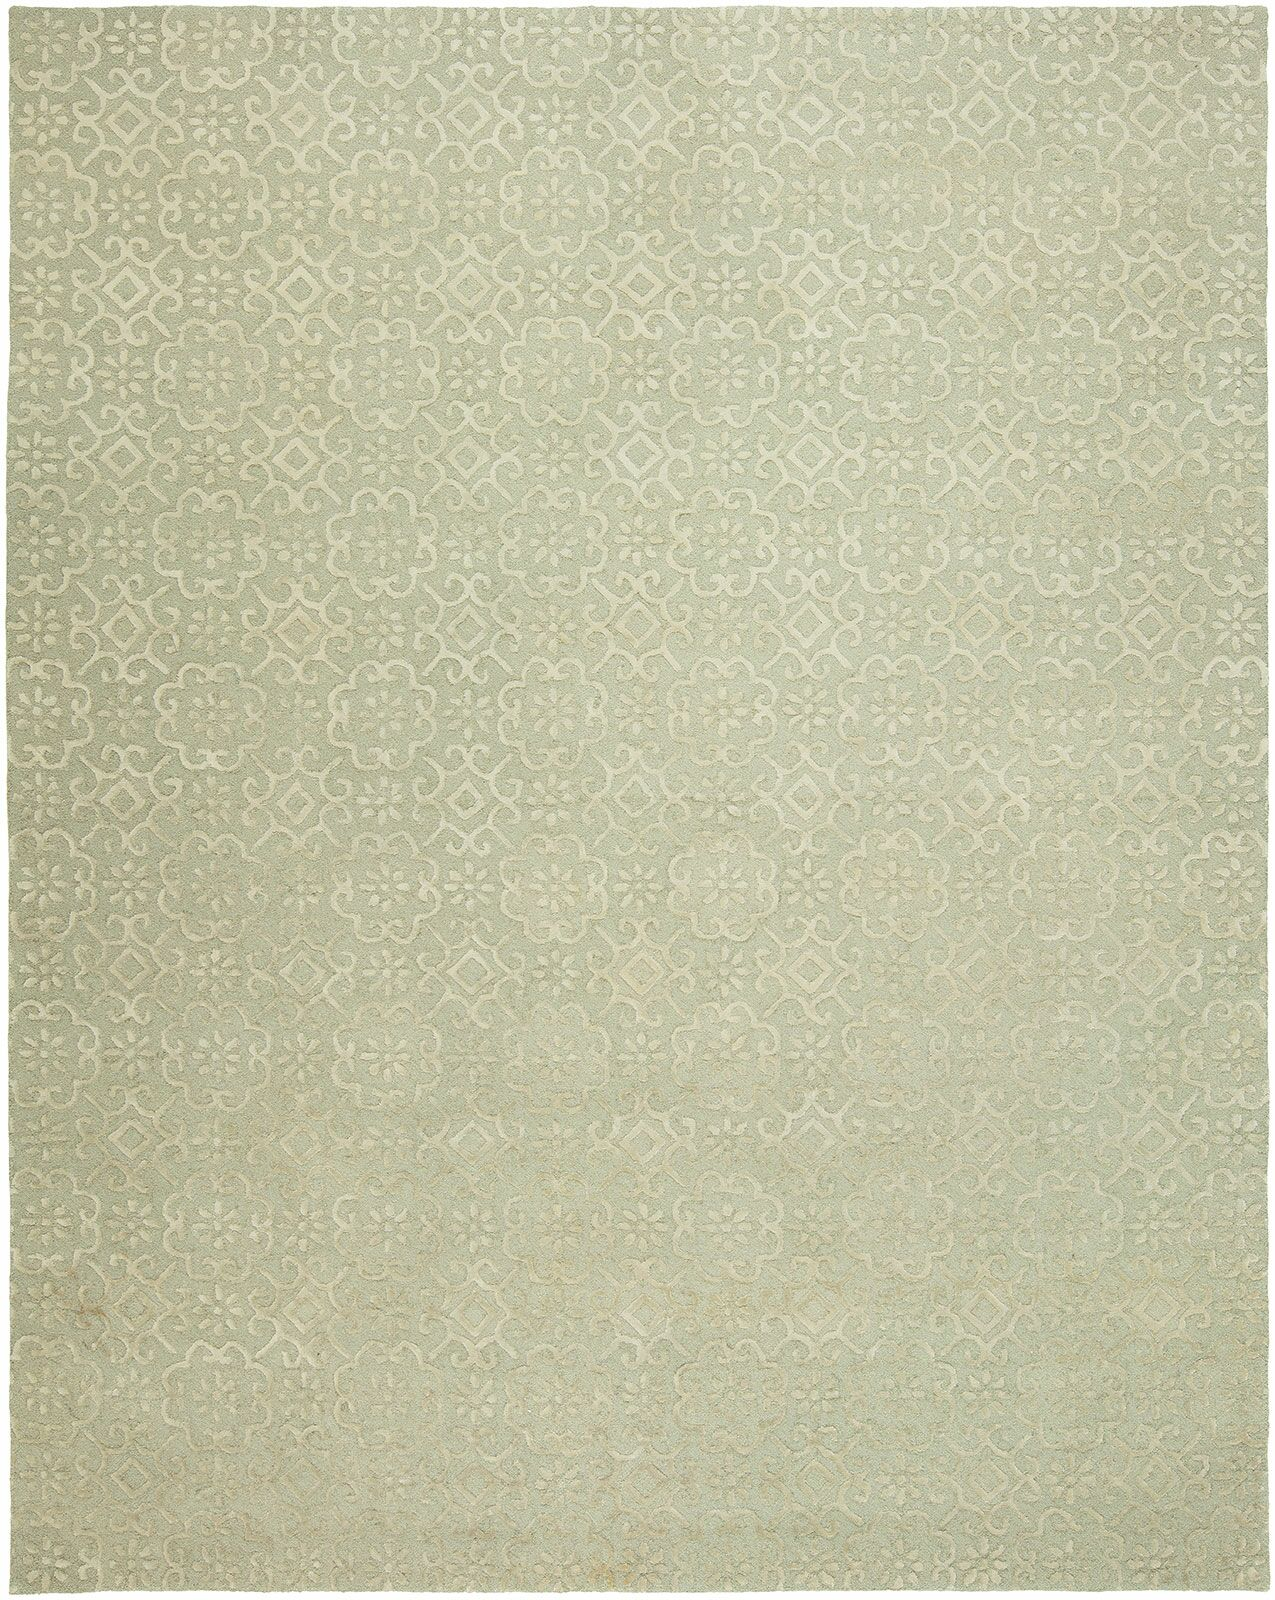 Ally Hand-Tufted Wool Ivory Area Rug Rug Size: Rectangle 3'6